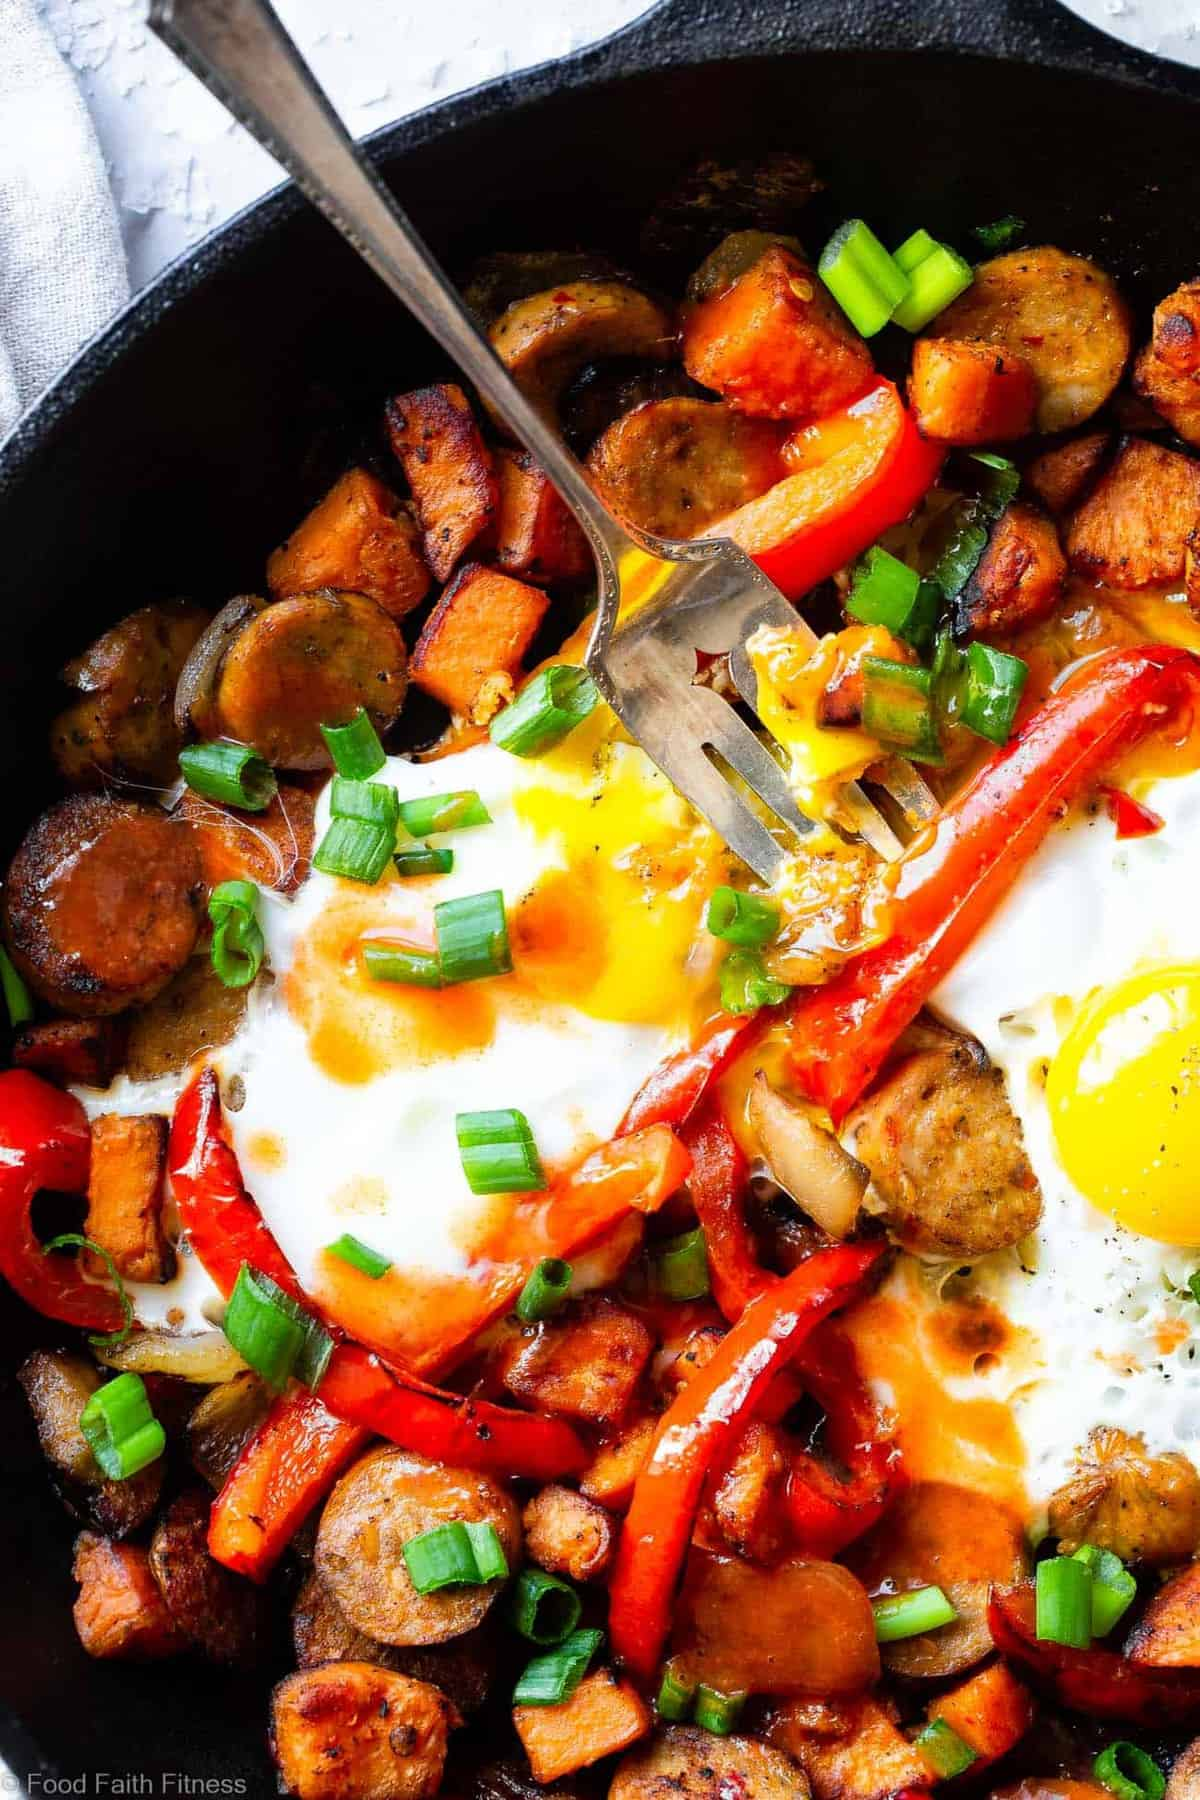 Buffalo Chicken Paleo Sweet Potato Hash - Agame day spin on a classic breakfast that will be hit with even picky eaters! It's a quick and easy breakfast OR dinner that is paleo and whole30 compliant too! | #Foodfaithfitness |